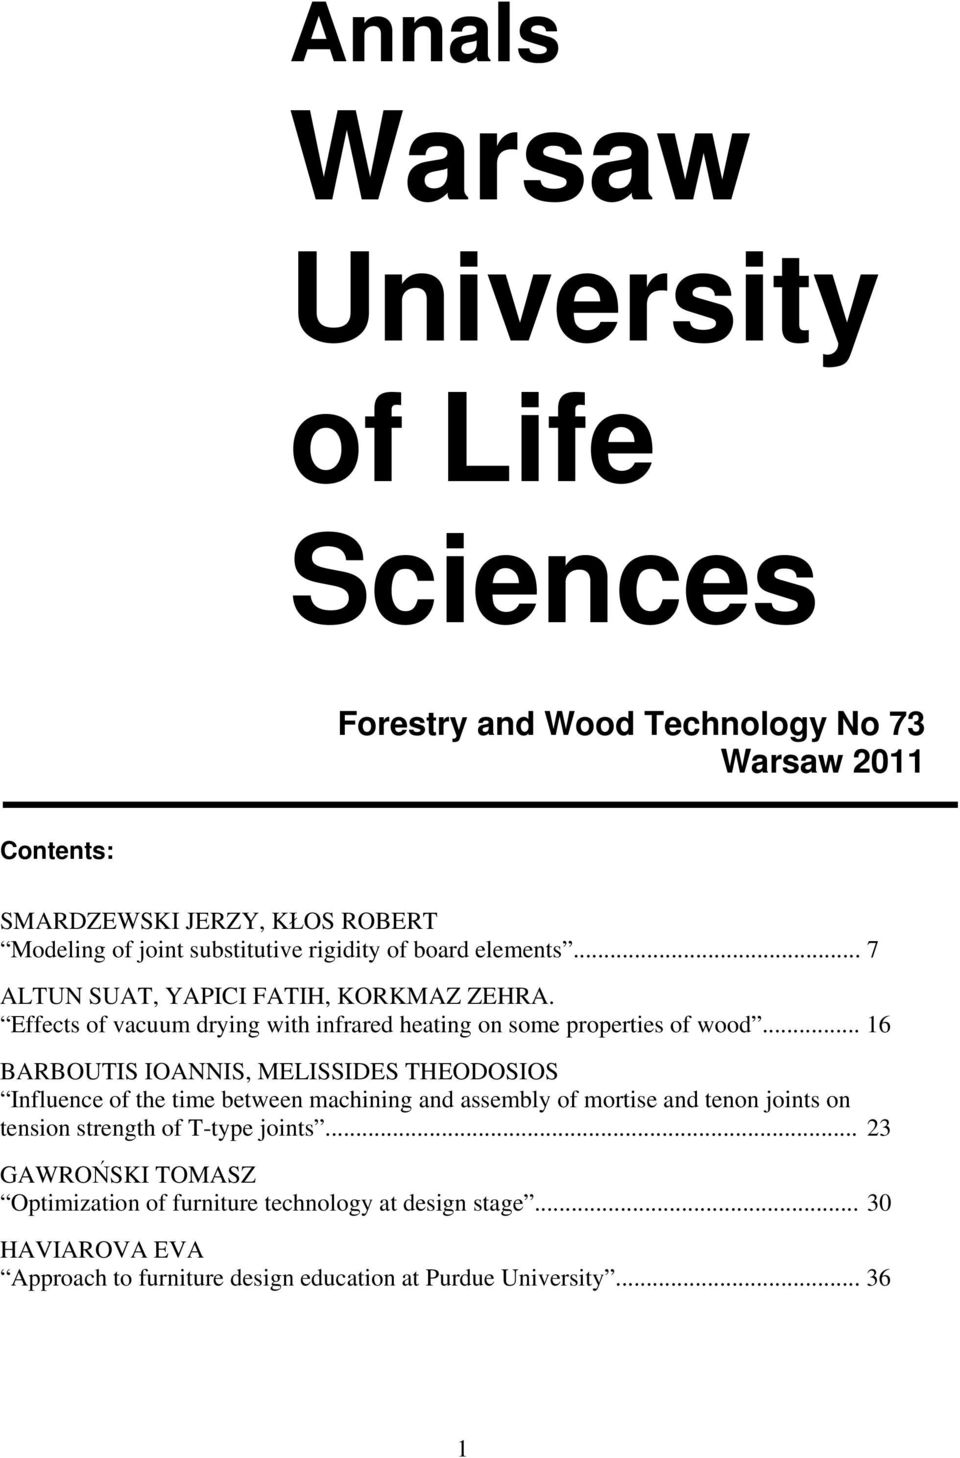 Effects of vacuum drying with infrared heating on some properties of wood.